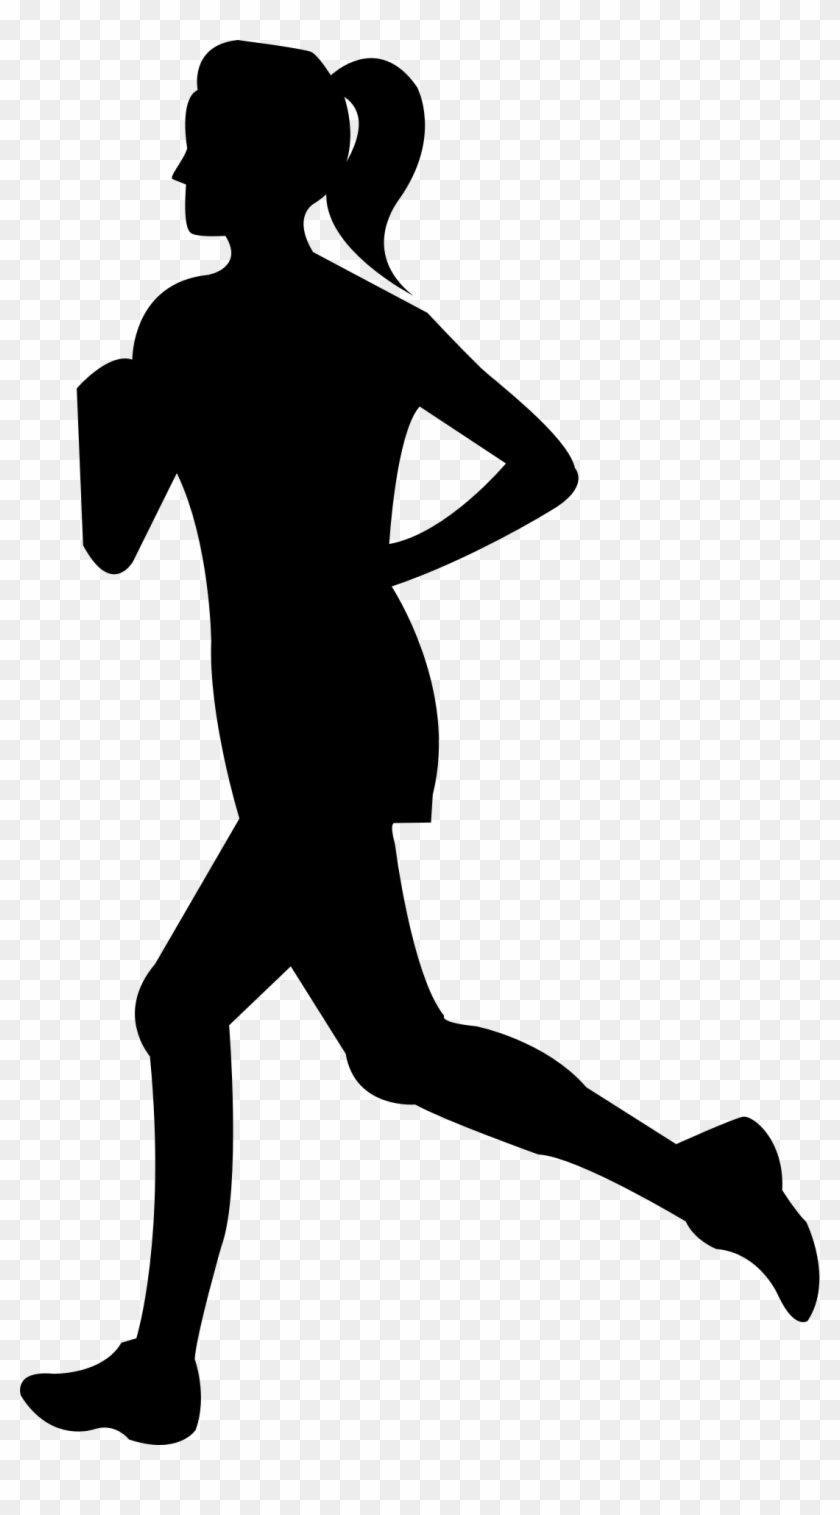 Free Clip Art Of Person Running Clipart Silhouette - Woman Running Silhouette Png #5505